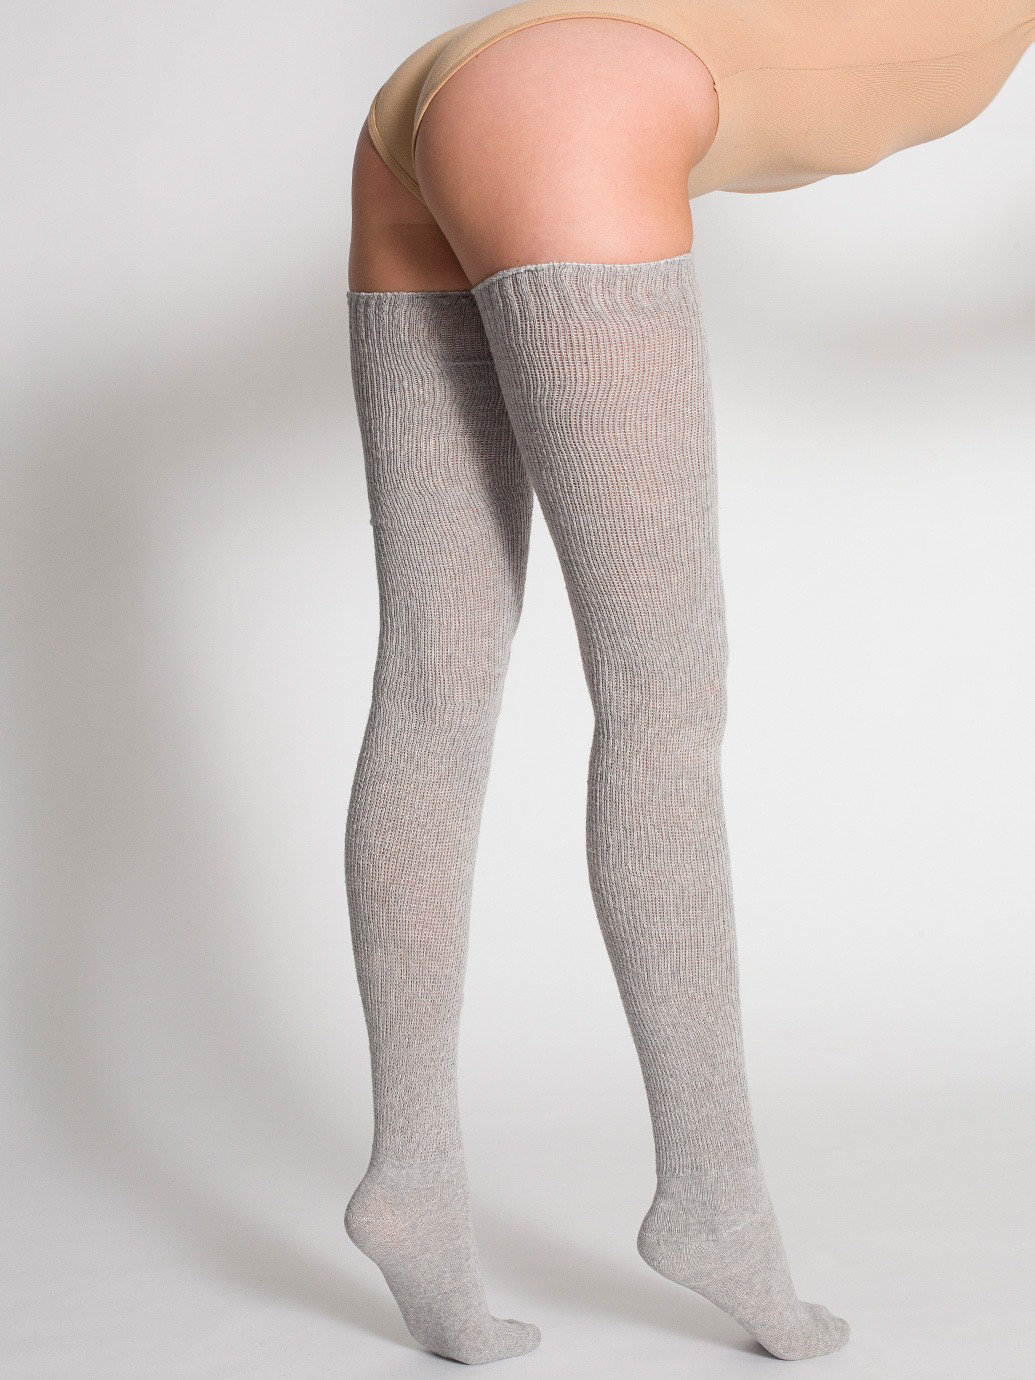 Heather Solid Thigh-High Socks | American Apparel